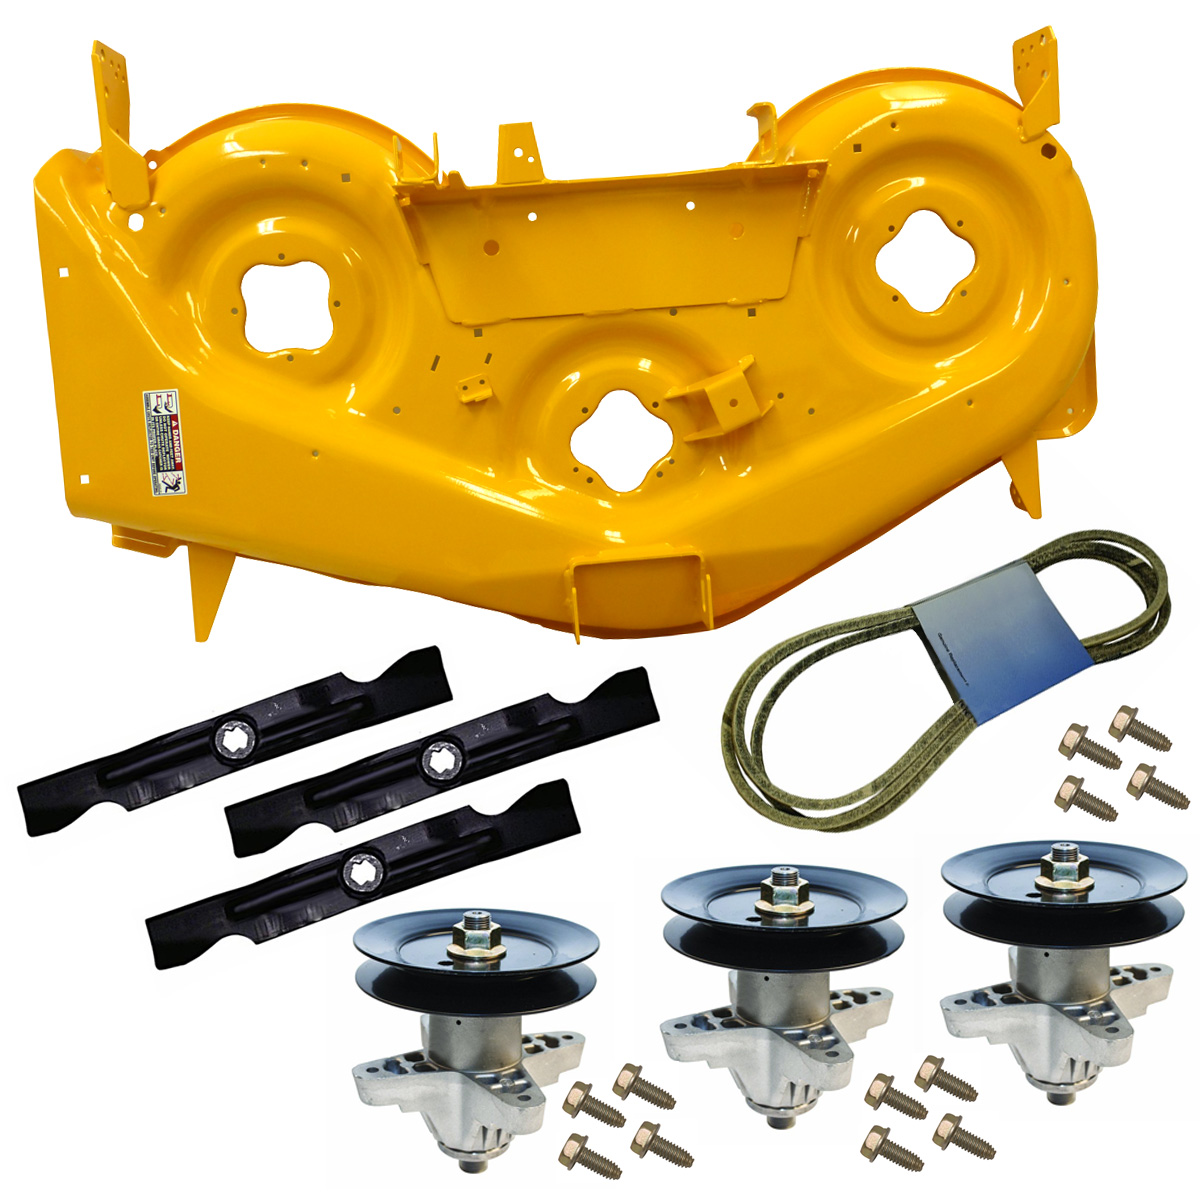 "Cub Cadet 50"" Deck Shell Replacement Kit (Yellow, RZT) for Lawn Tractors & Others   903-04328C-0716-KIT by Cub Cadet"